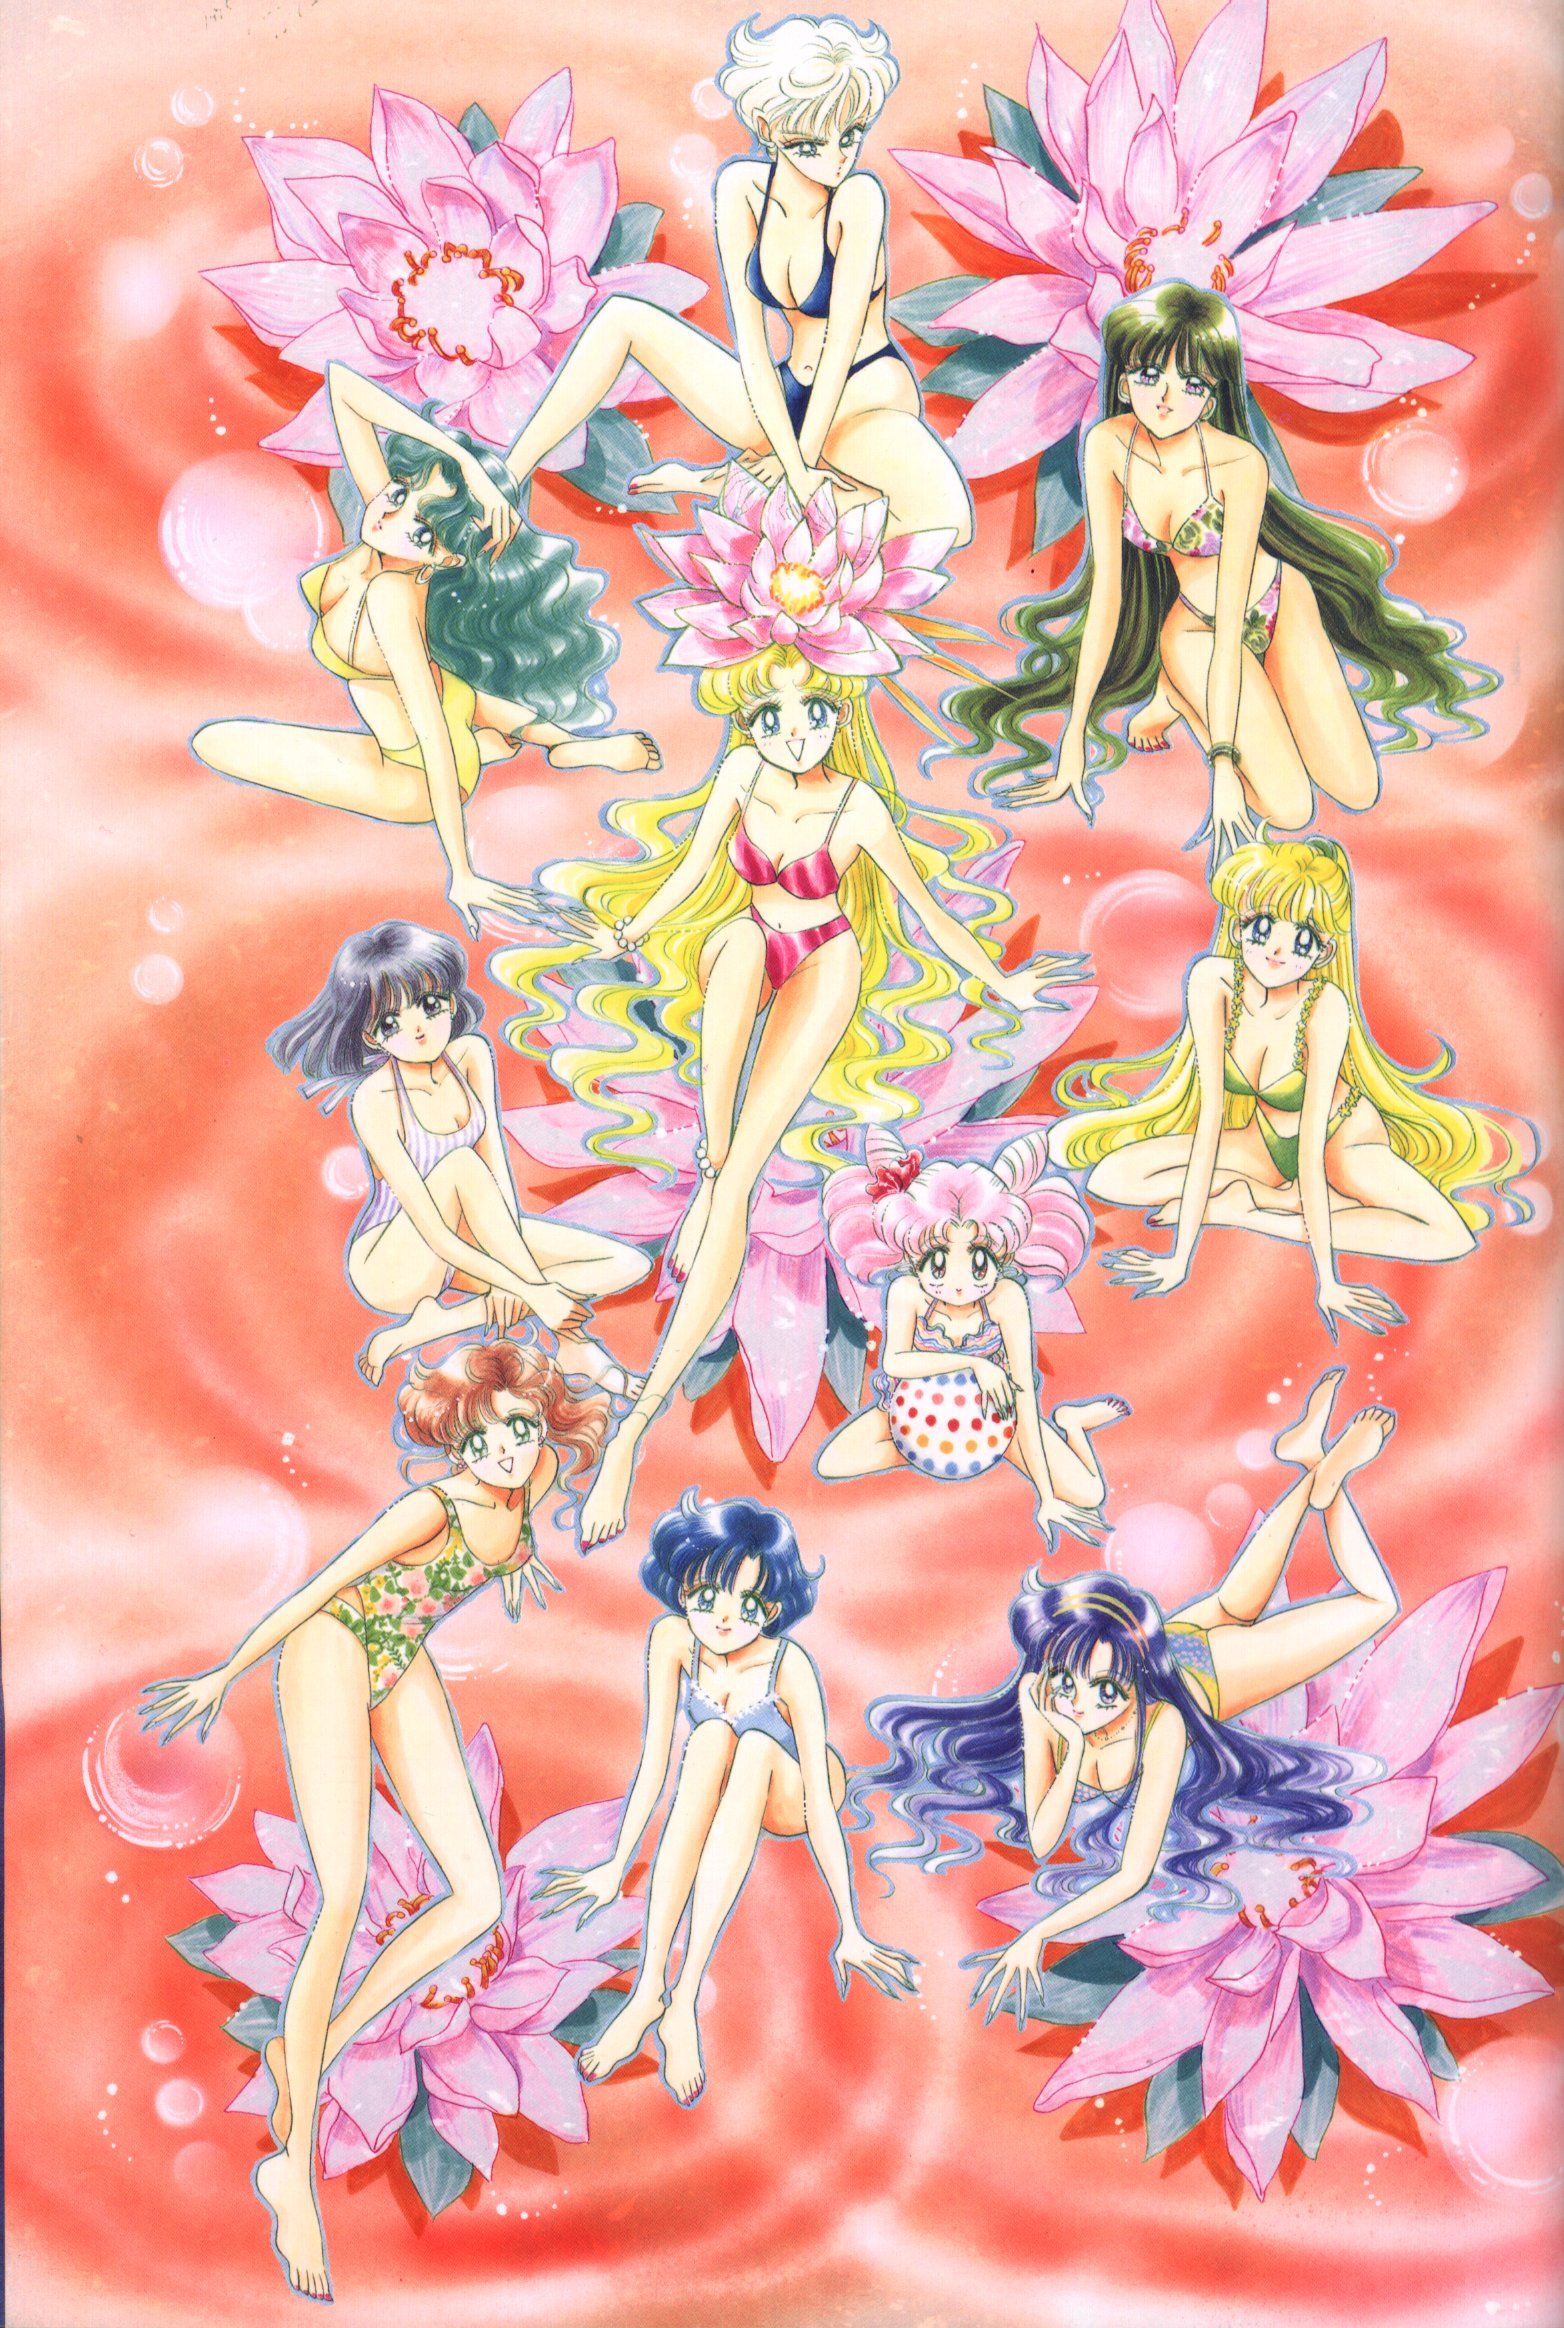 All of the manga Senshi wearing swimming suits